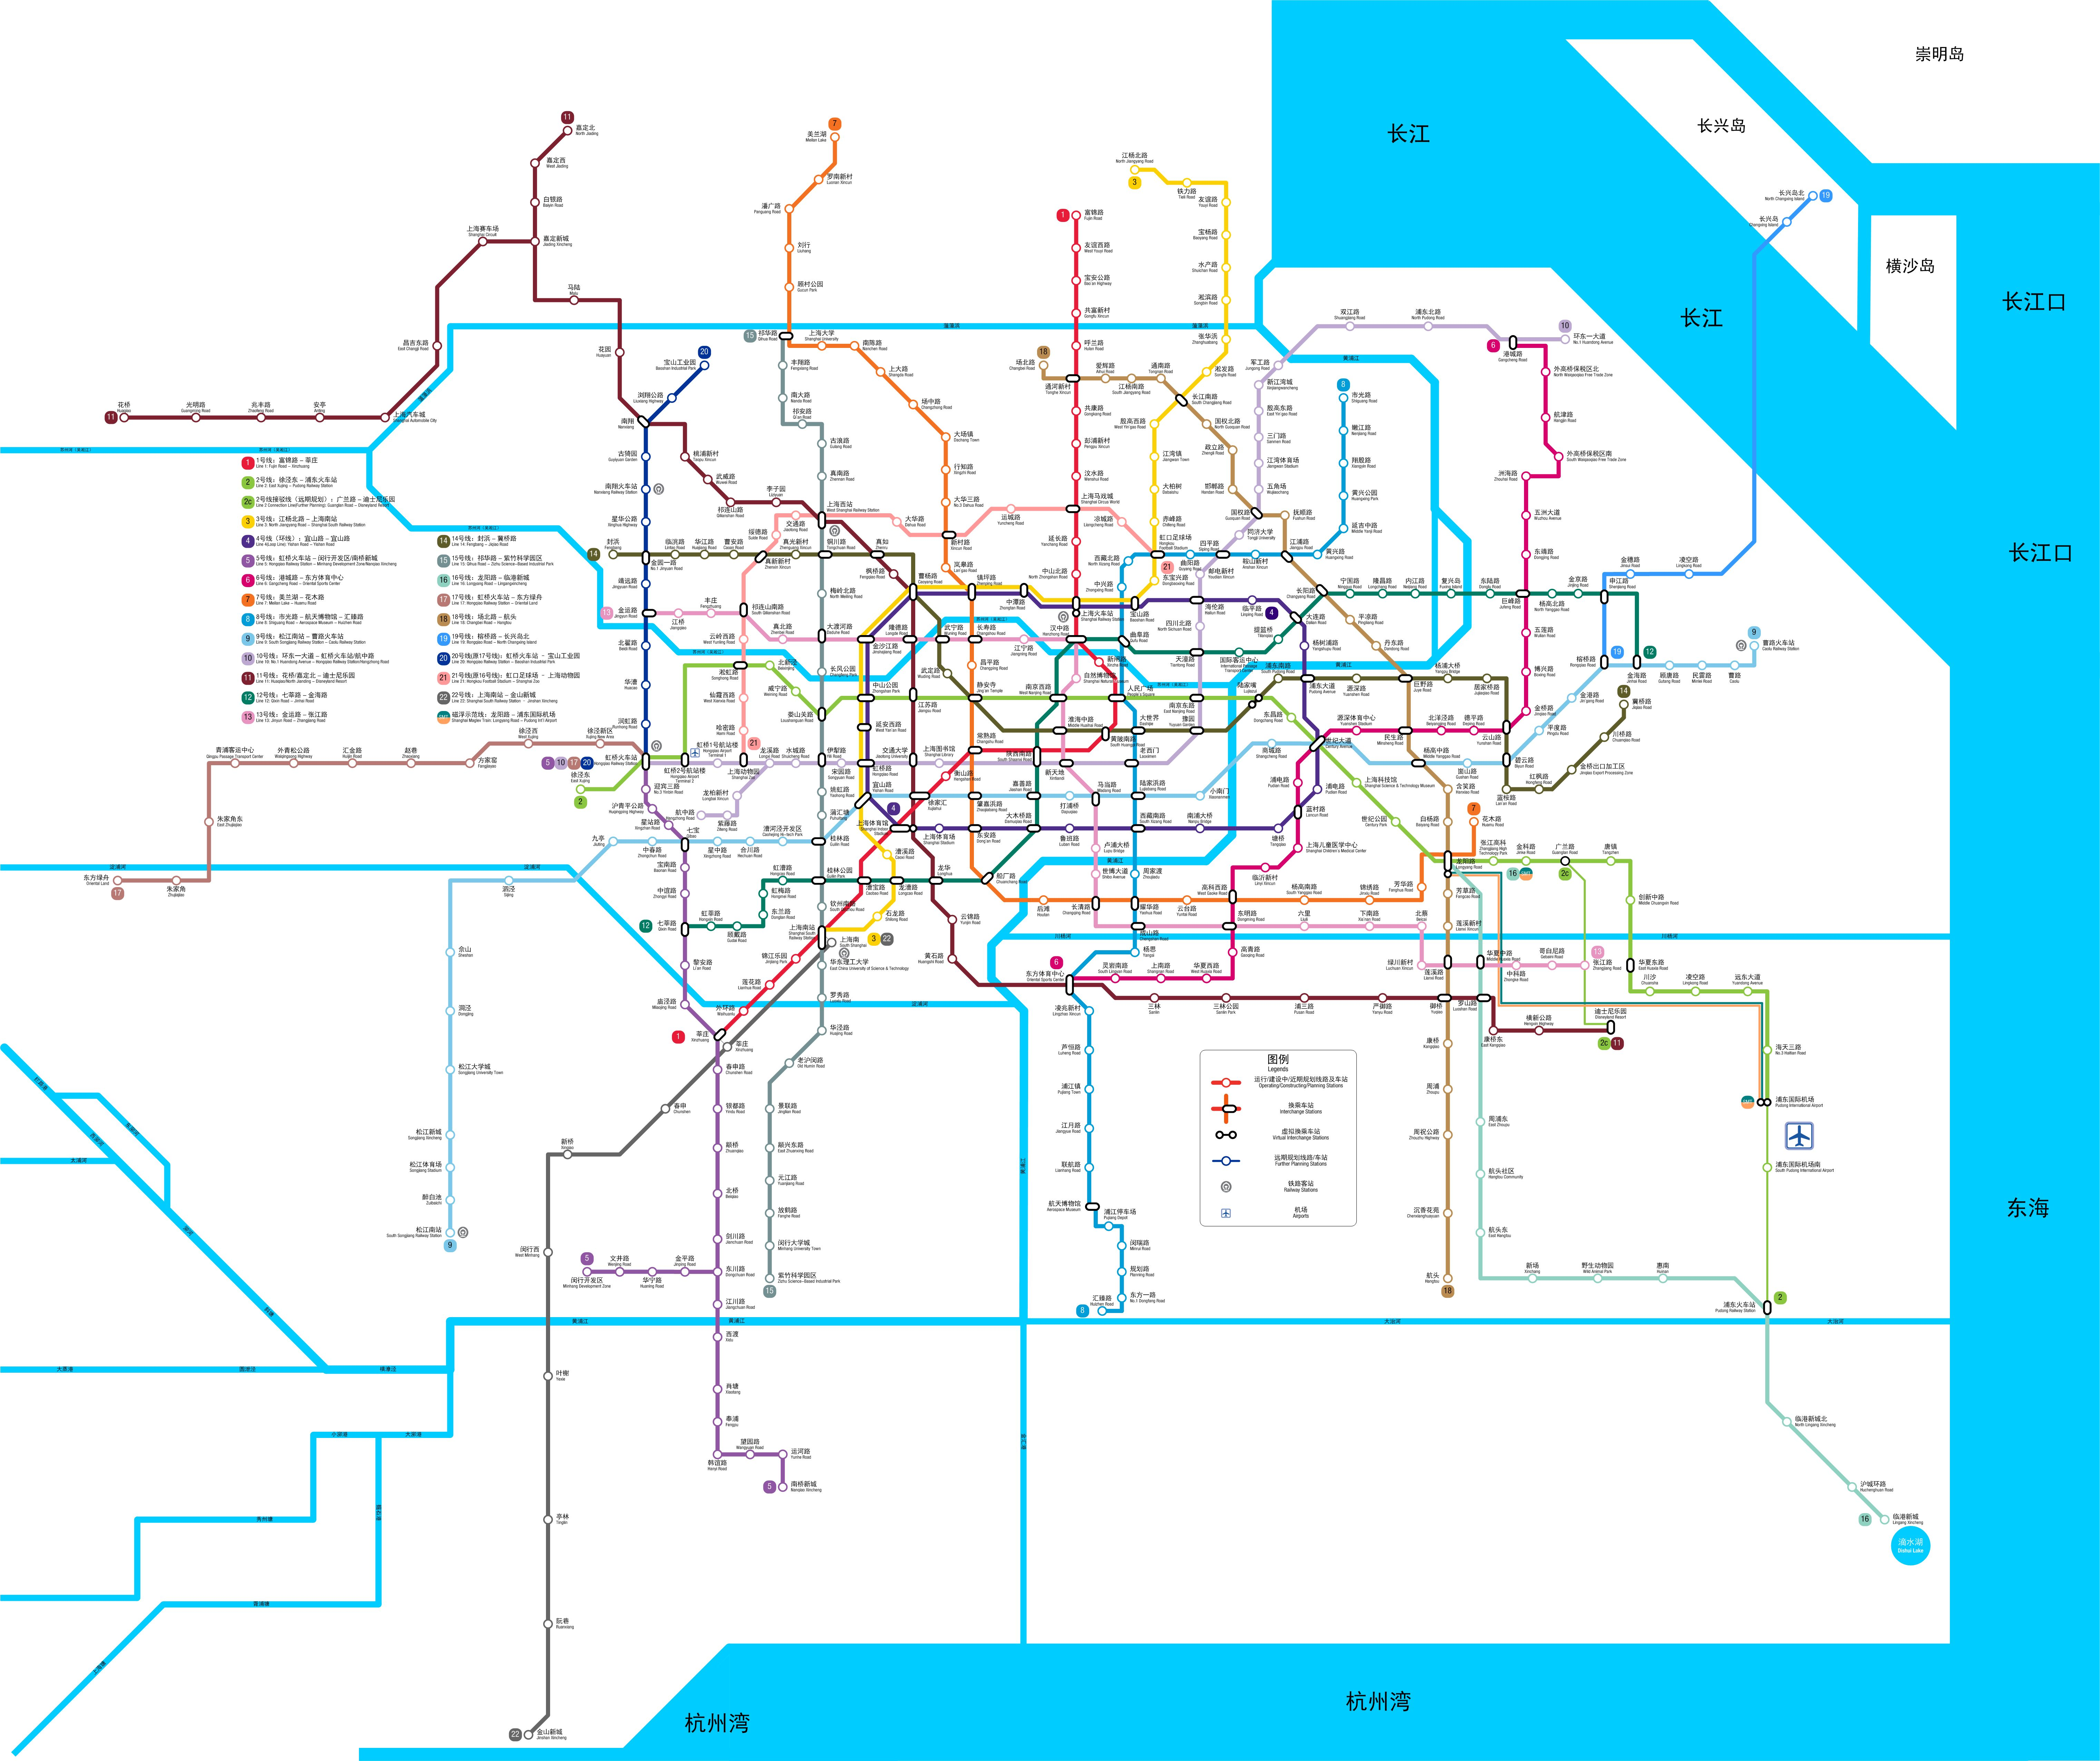 What the Shanghai Metro will look like in 2014 and 2020 ... Map Of Shanghai Metro on map of montreal metro, map of hamburg metro, map of prague metro, map of panama city metro, map of metro rail, map of washington metro, map of zhengzhou metro, map of london metro, map of dubai metro, map of moscow metro, map of barcelona metro, map of houston metro, map of suzhou metro, map of chicago metro, map of rome metro, map of nanjing metro, map of dublin metro, map of shenzhen metro, map of copenhagen metro, map of brussels metro,